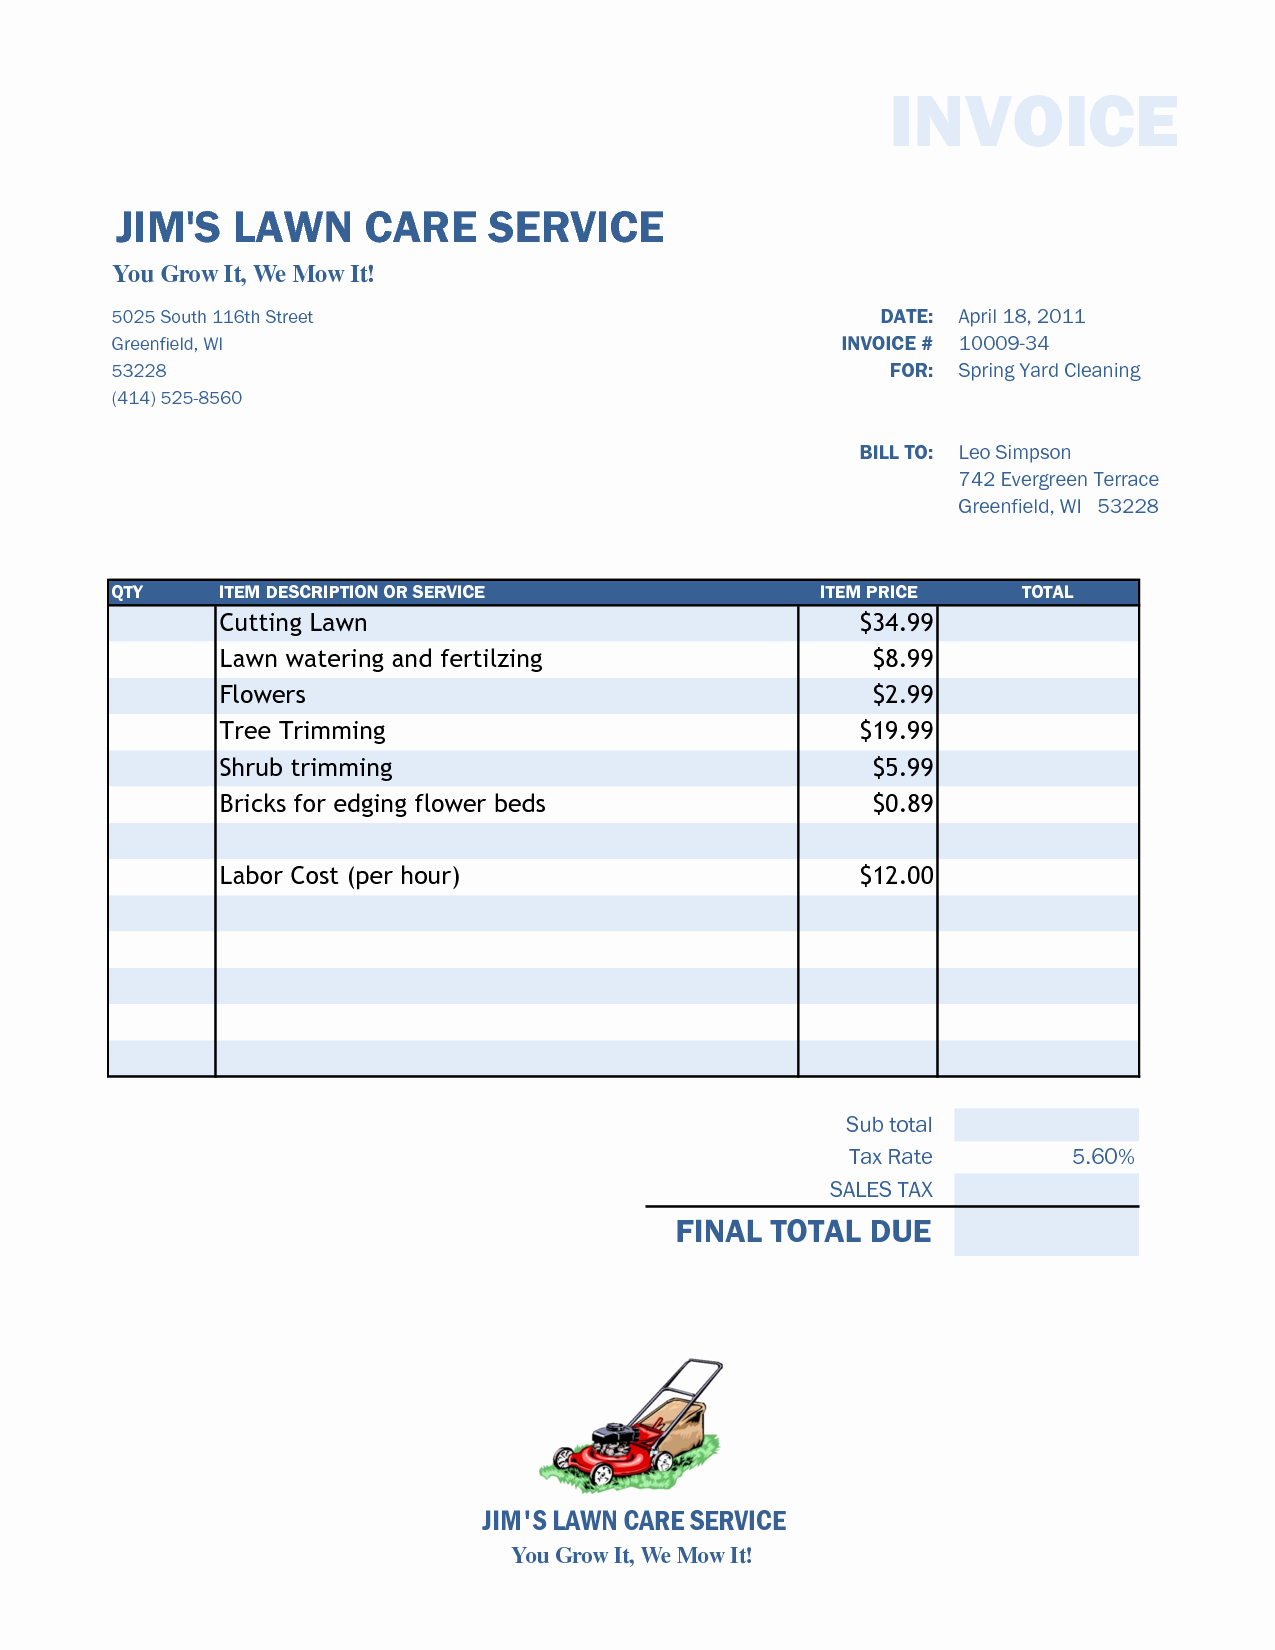 Landscaping Invoice Template Free New Lawn Care Invoice Template Word